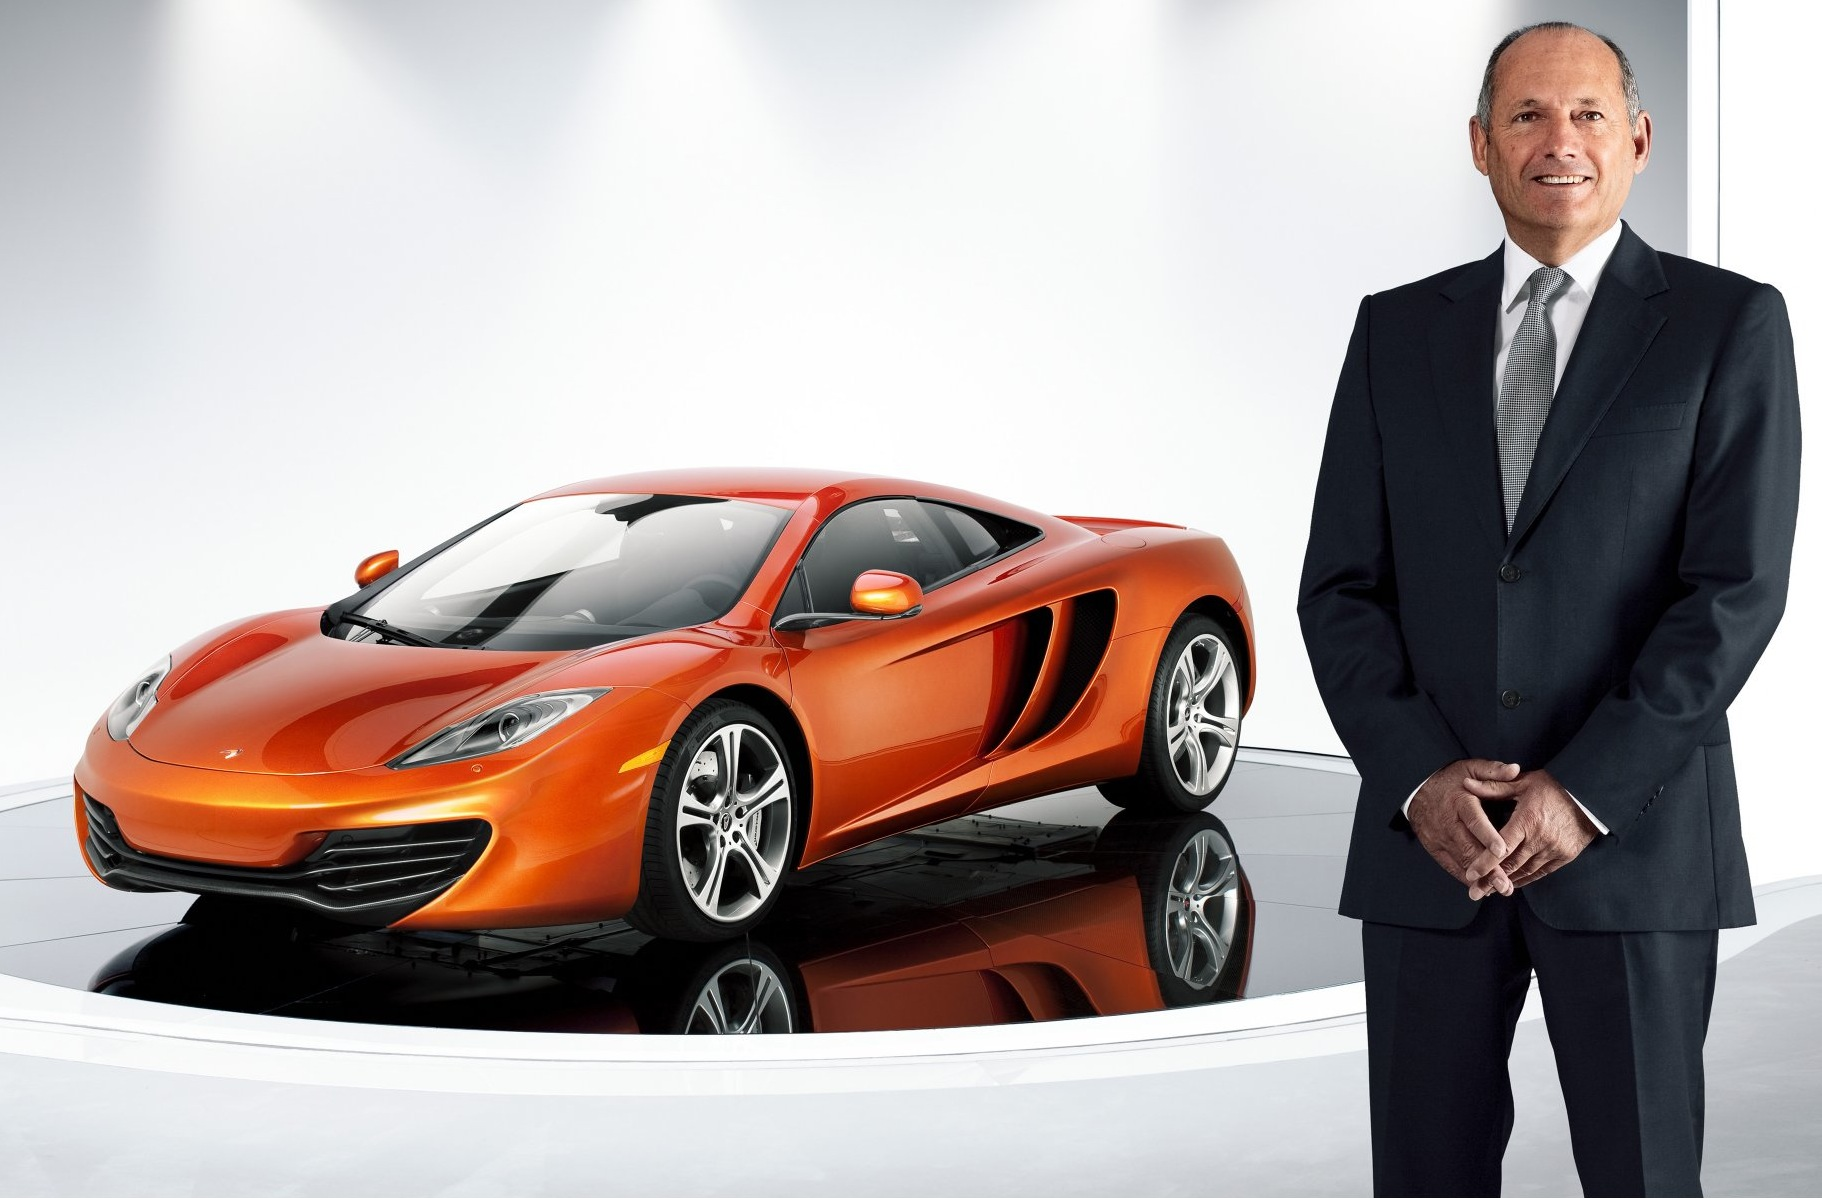 Ron_Dennis_McLaren_Automotive